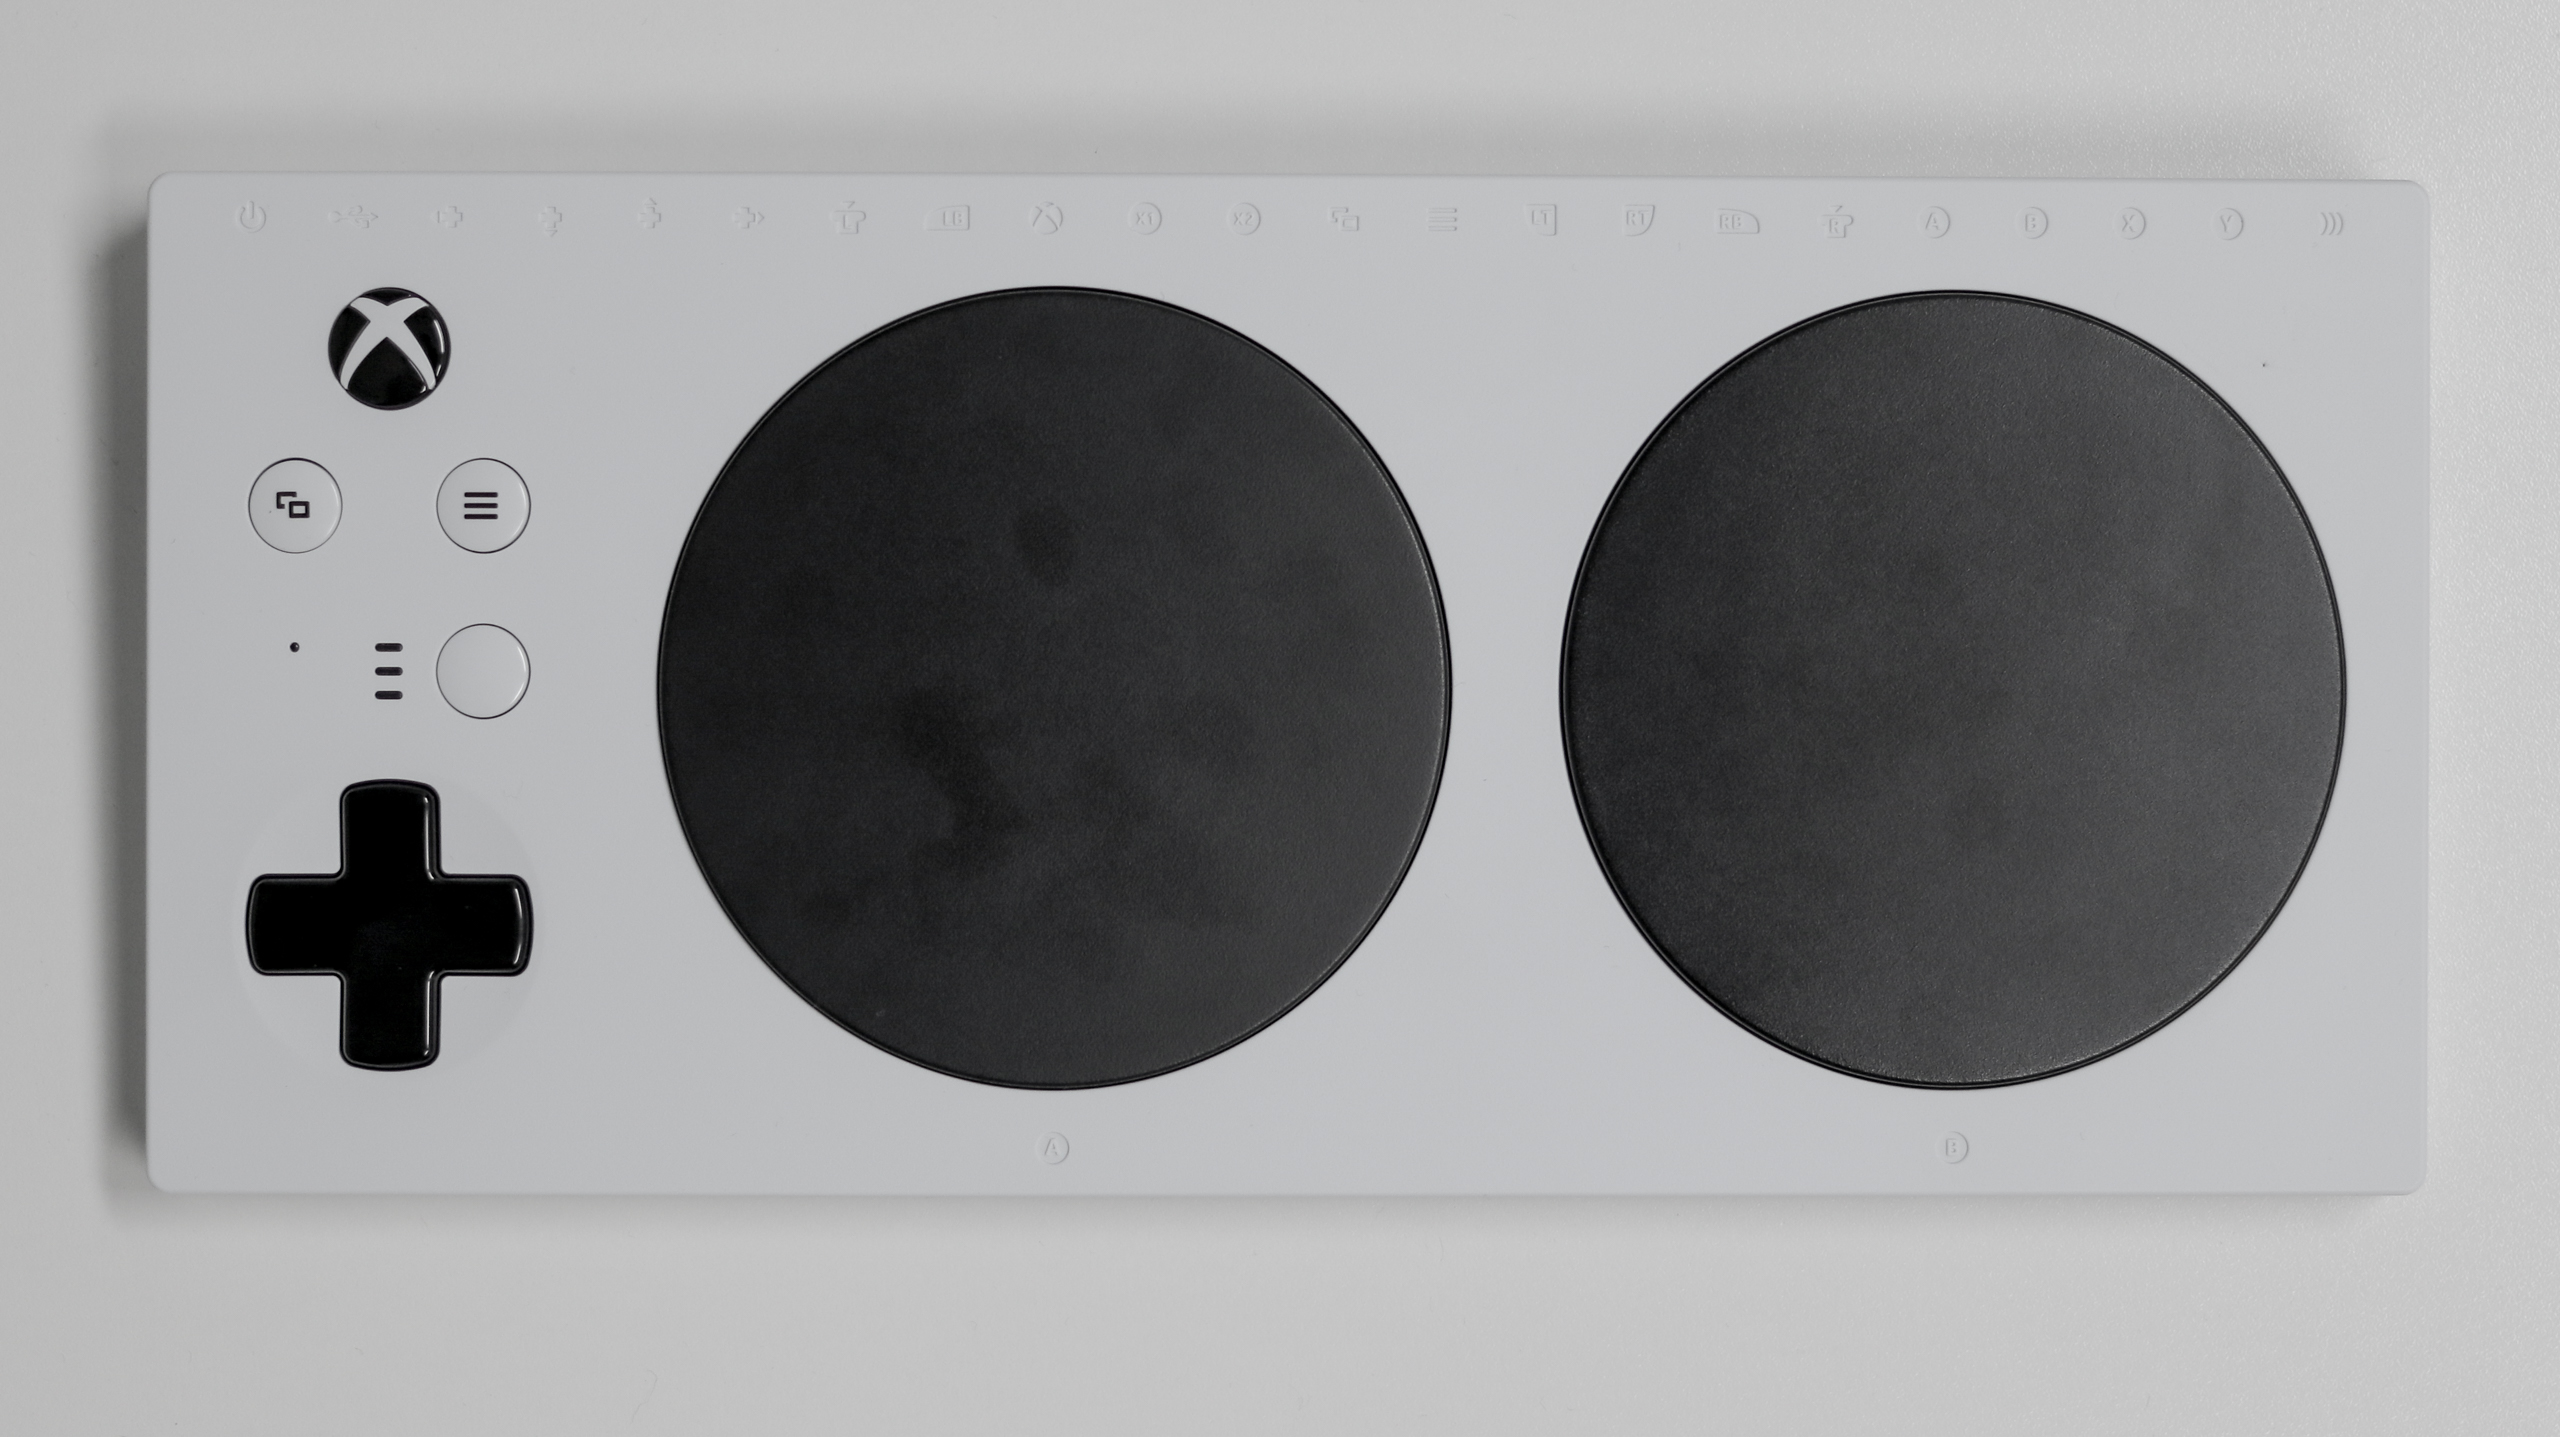 Yes, the Xbox Adaptive Controller is innovative – if you can afford the added expenses